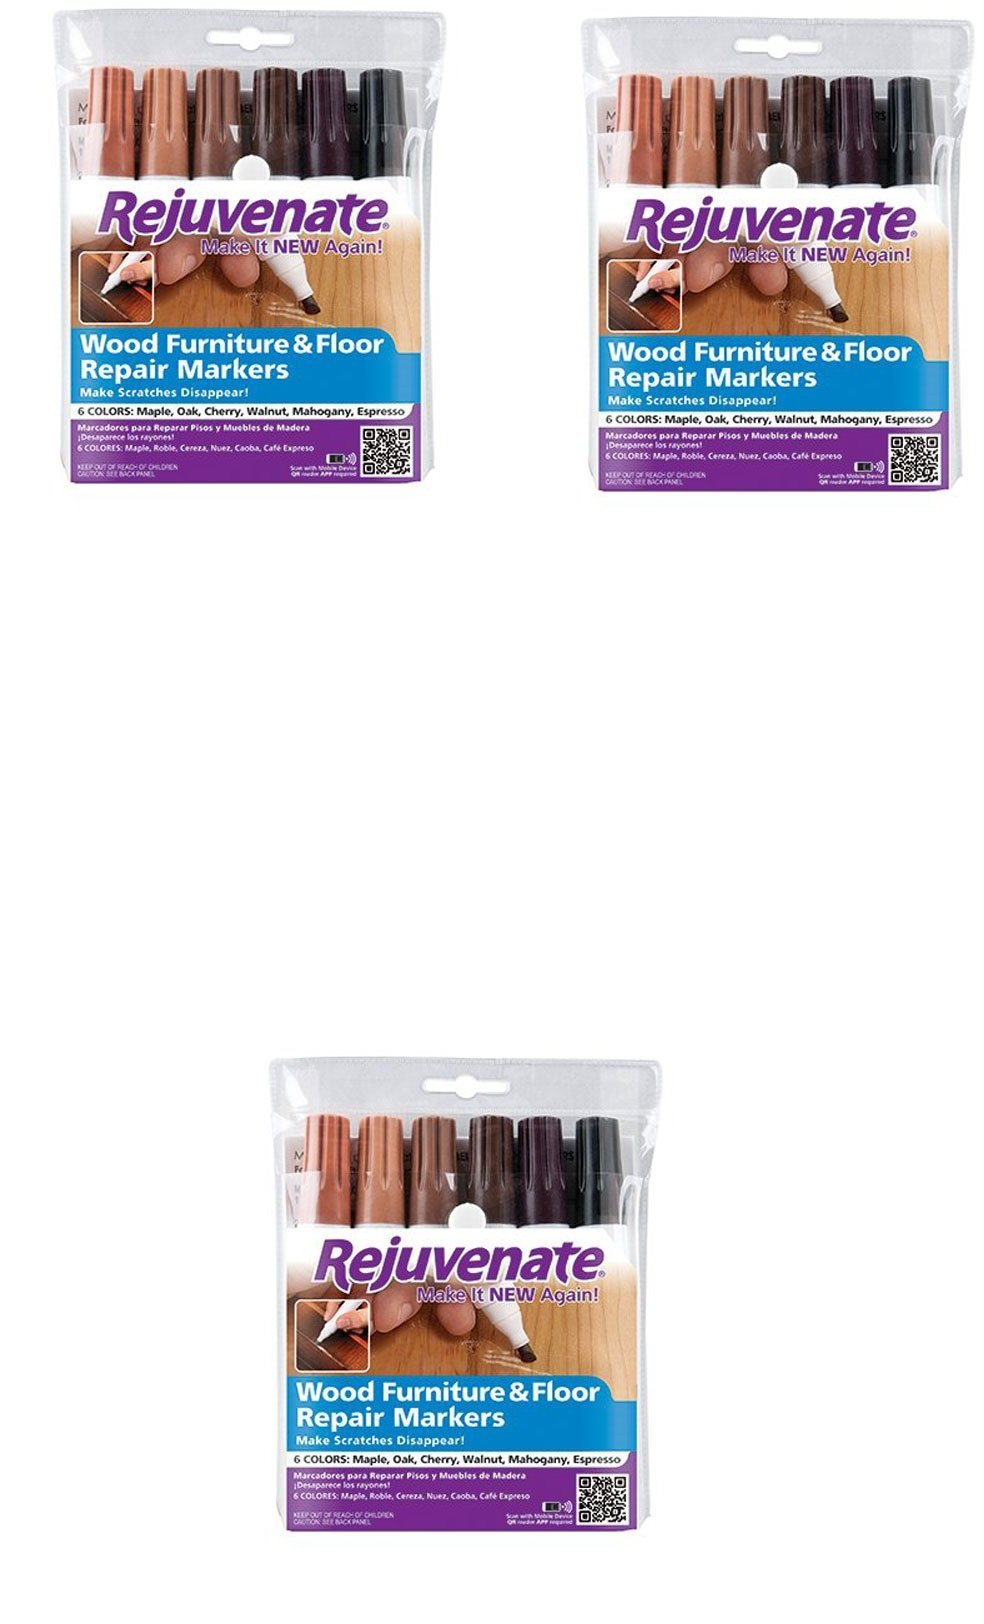 Rejuvenate Wood Furniture & Floor Repair Markers Make Scratches Disappear in Any Color Wood - 6 Colors; Maple, Oak, Cherry, Walnut, Mahogany, Espresso (3 pack)